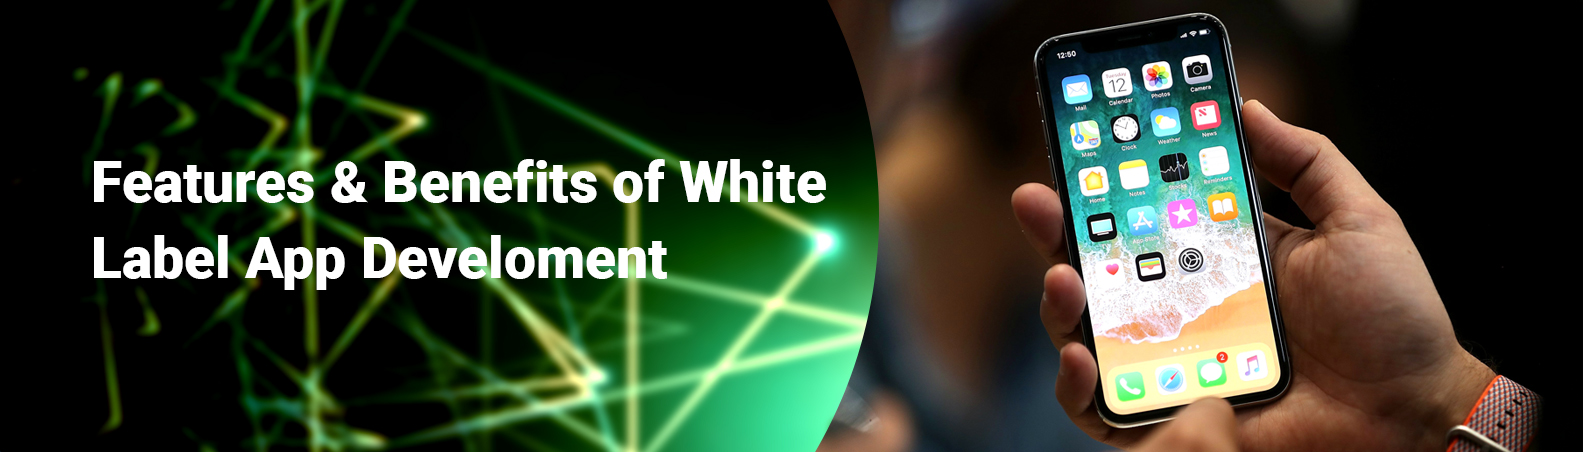 Features & Benefits of White Label App Development